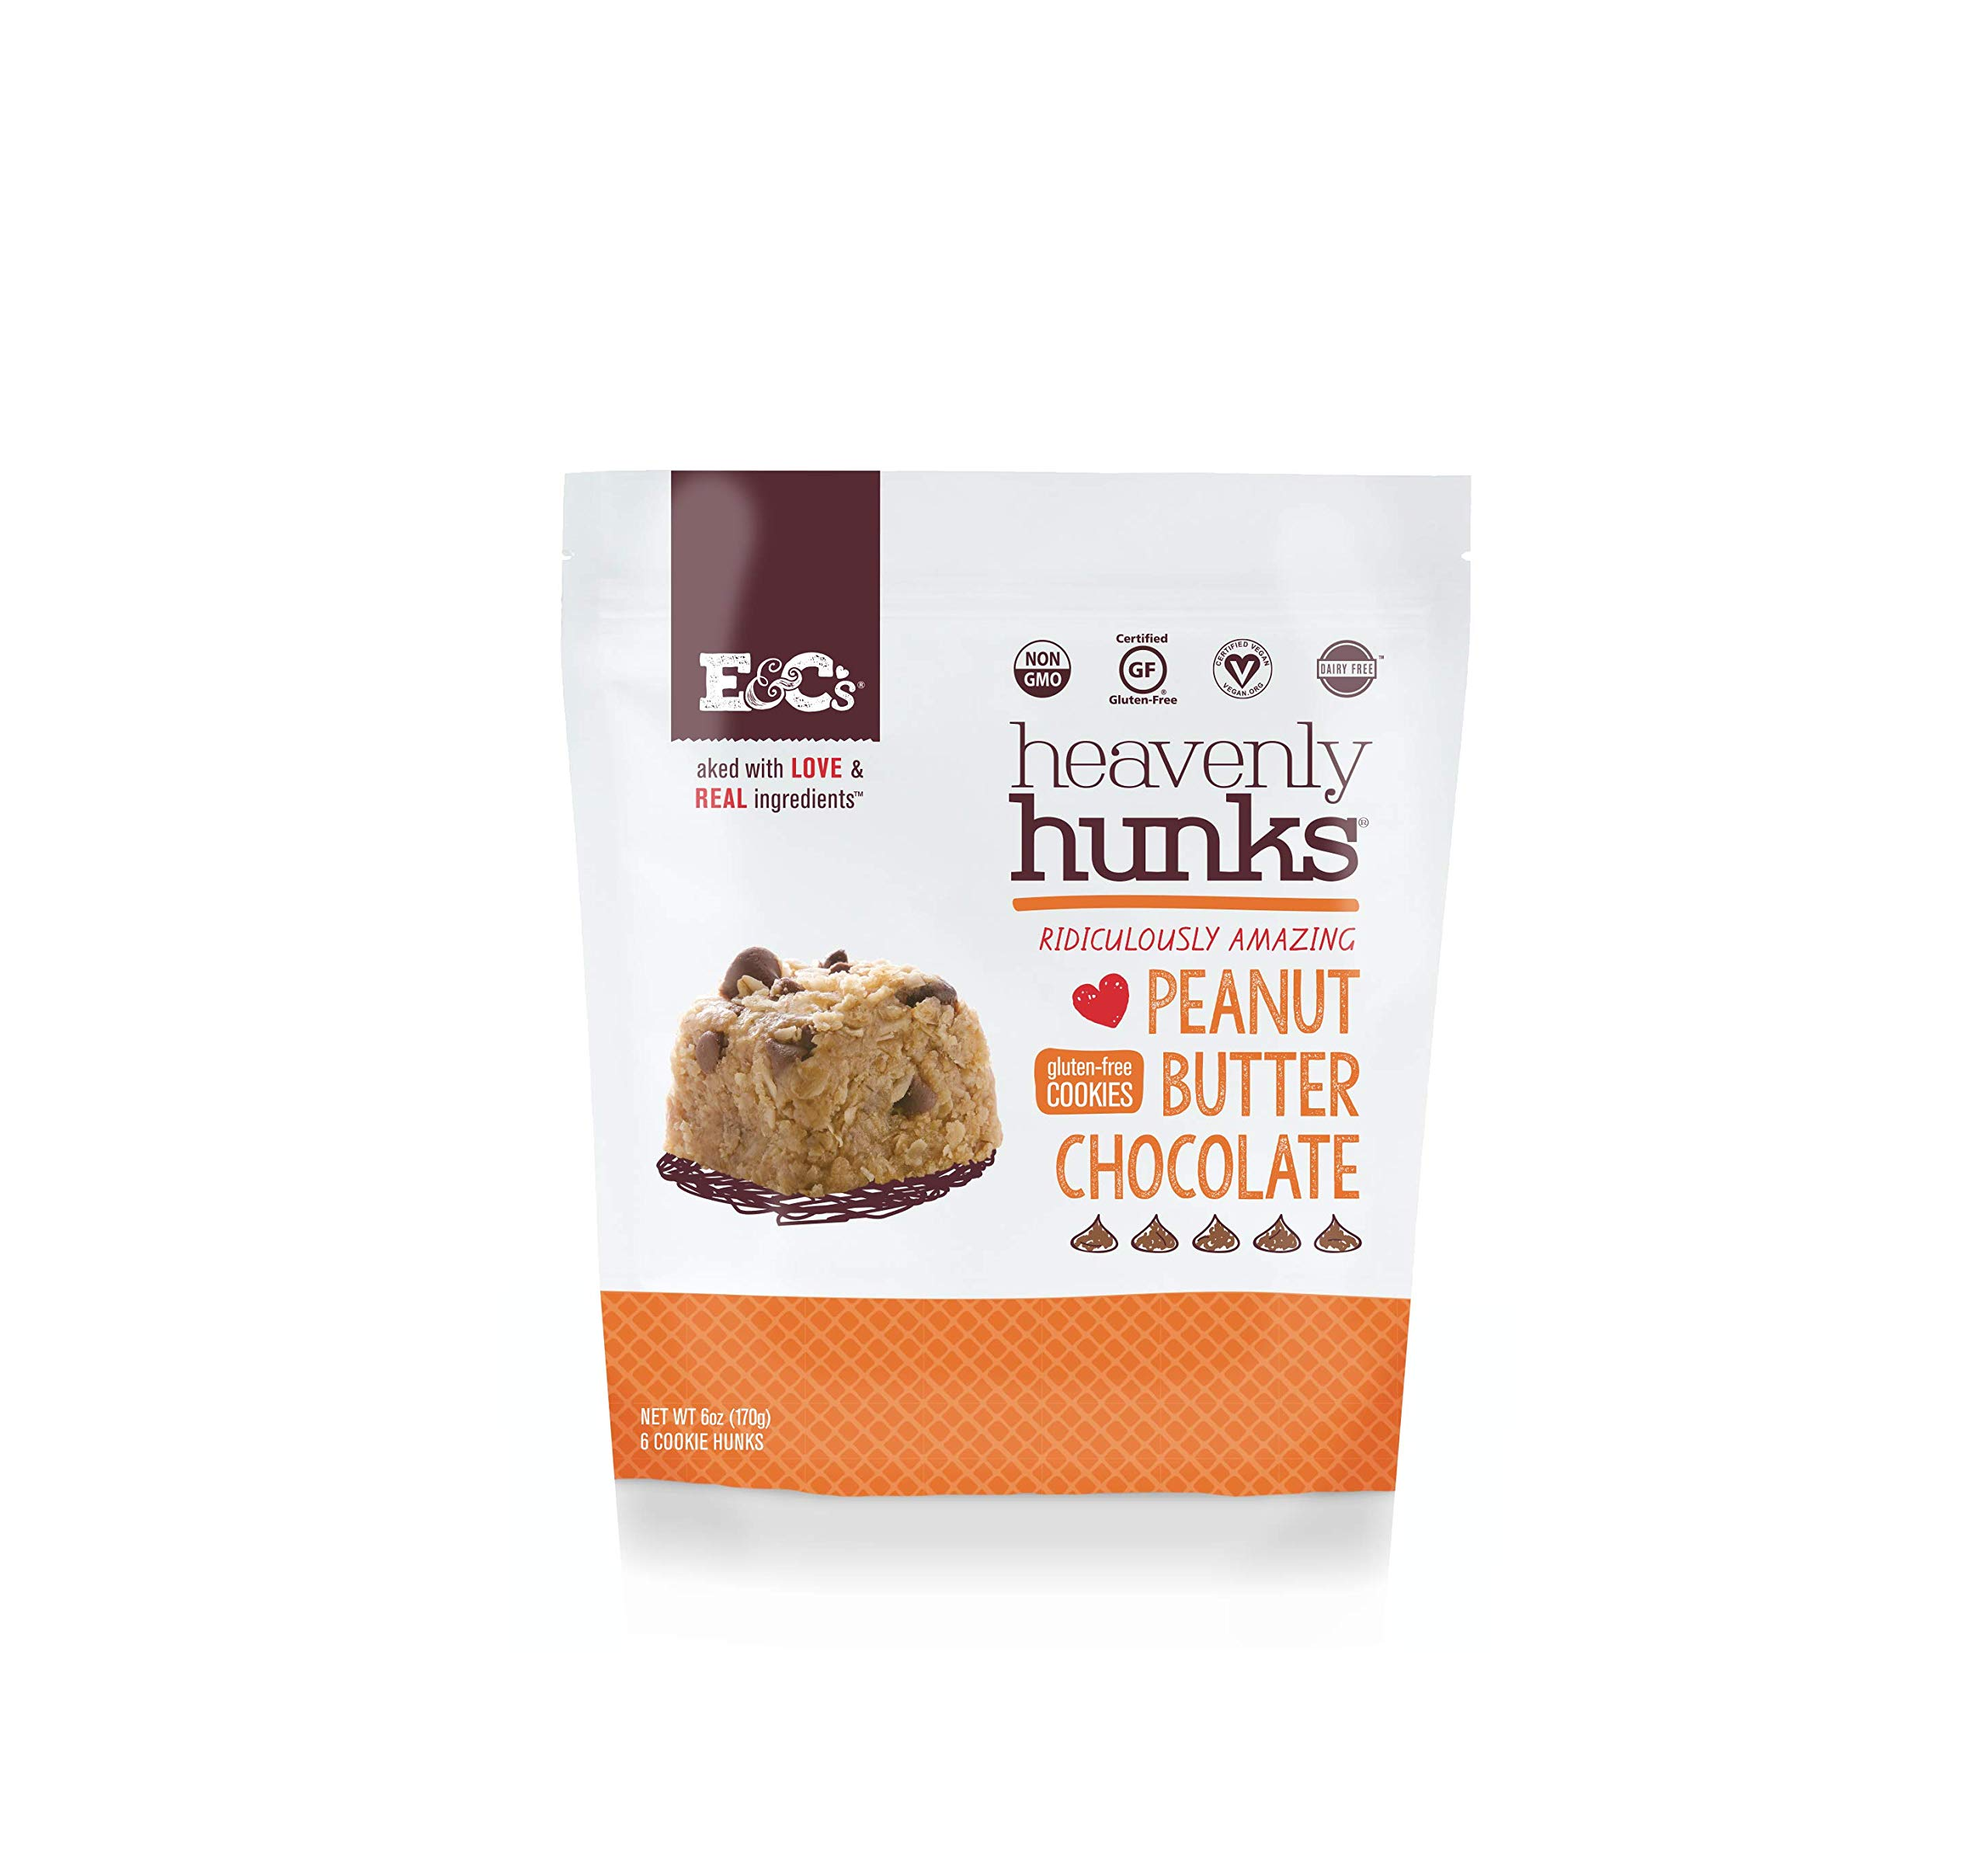 Heavenly Hunks (Peanut Butter Chocolate, 1 case (6/6oz bags)) by E&C's Snacks